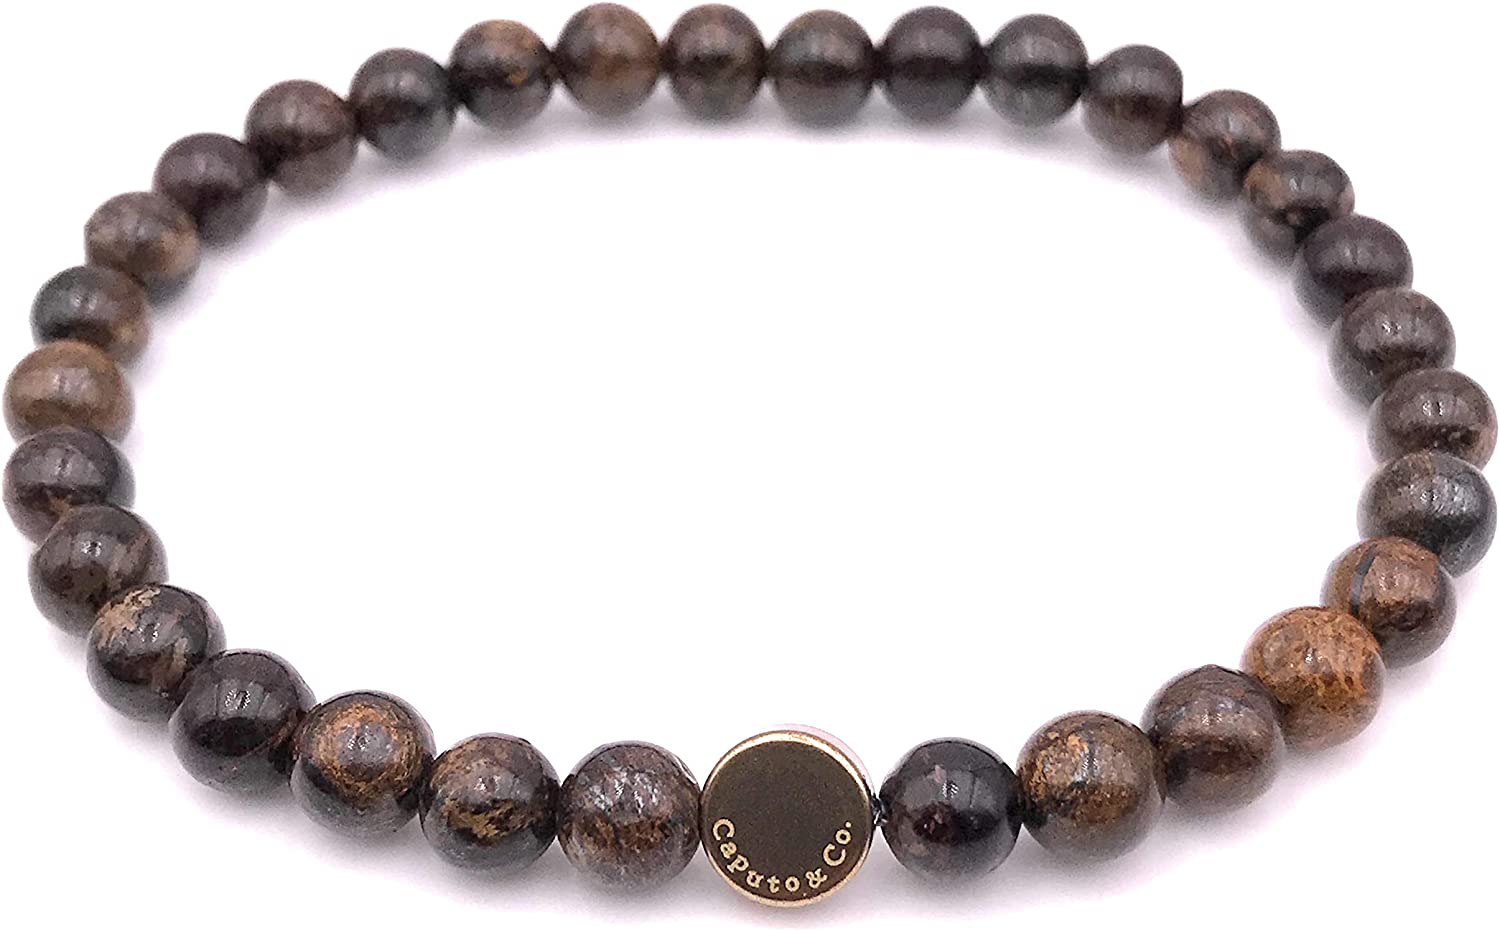 Men's Stone Stretch Bead Bracelet - in Brown Handcrafted USA 2021new online shop shipping free